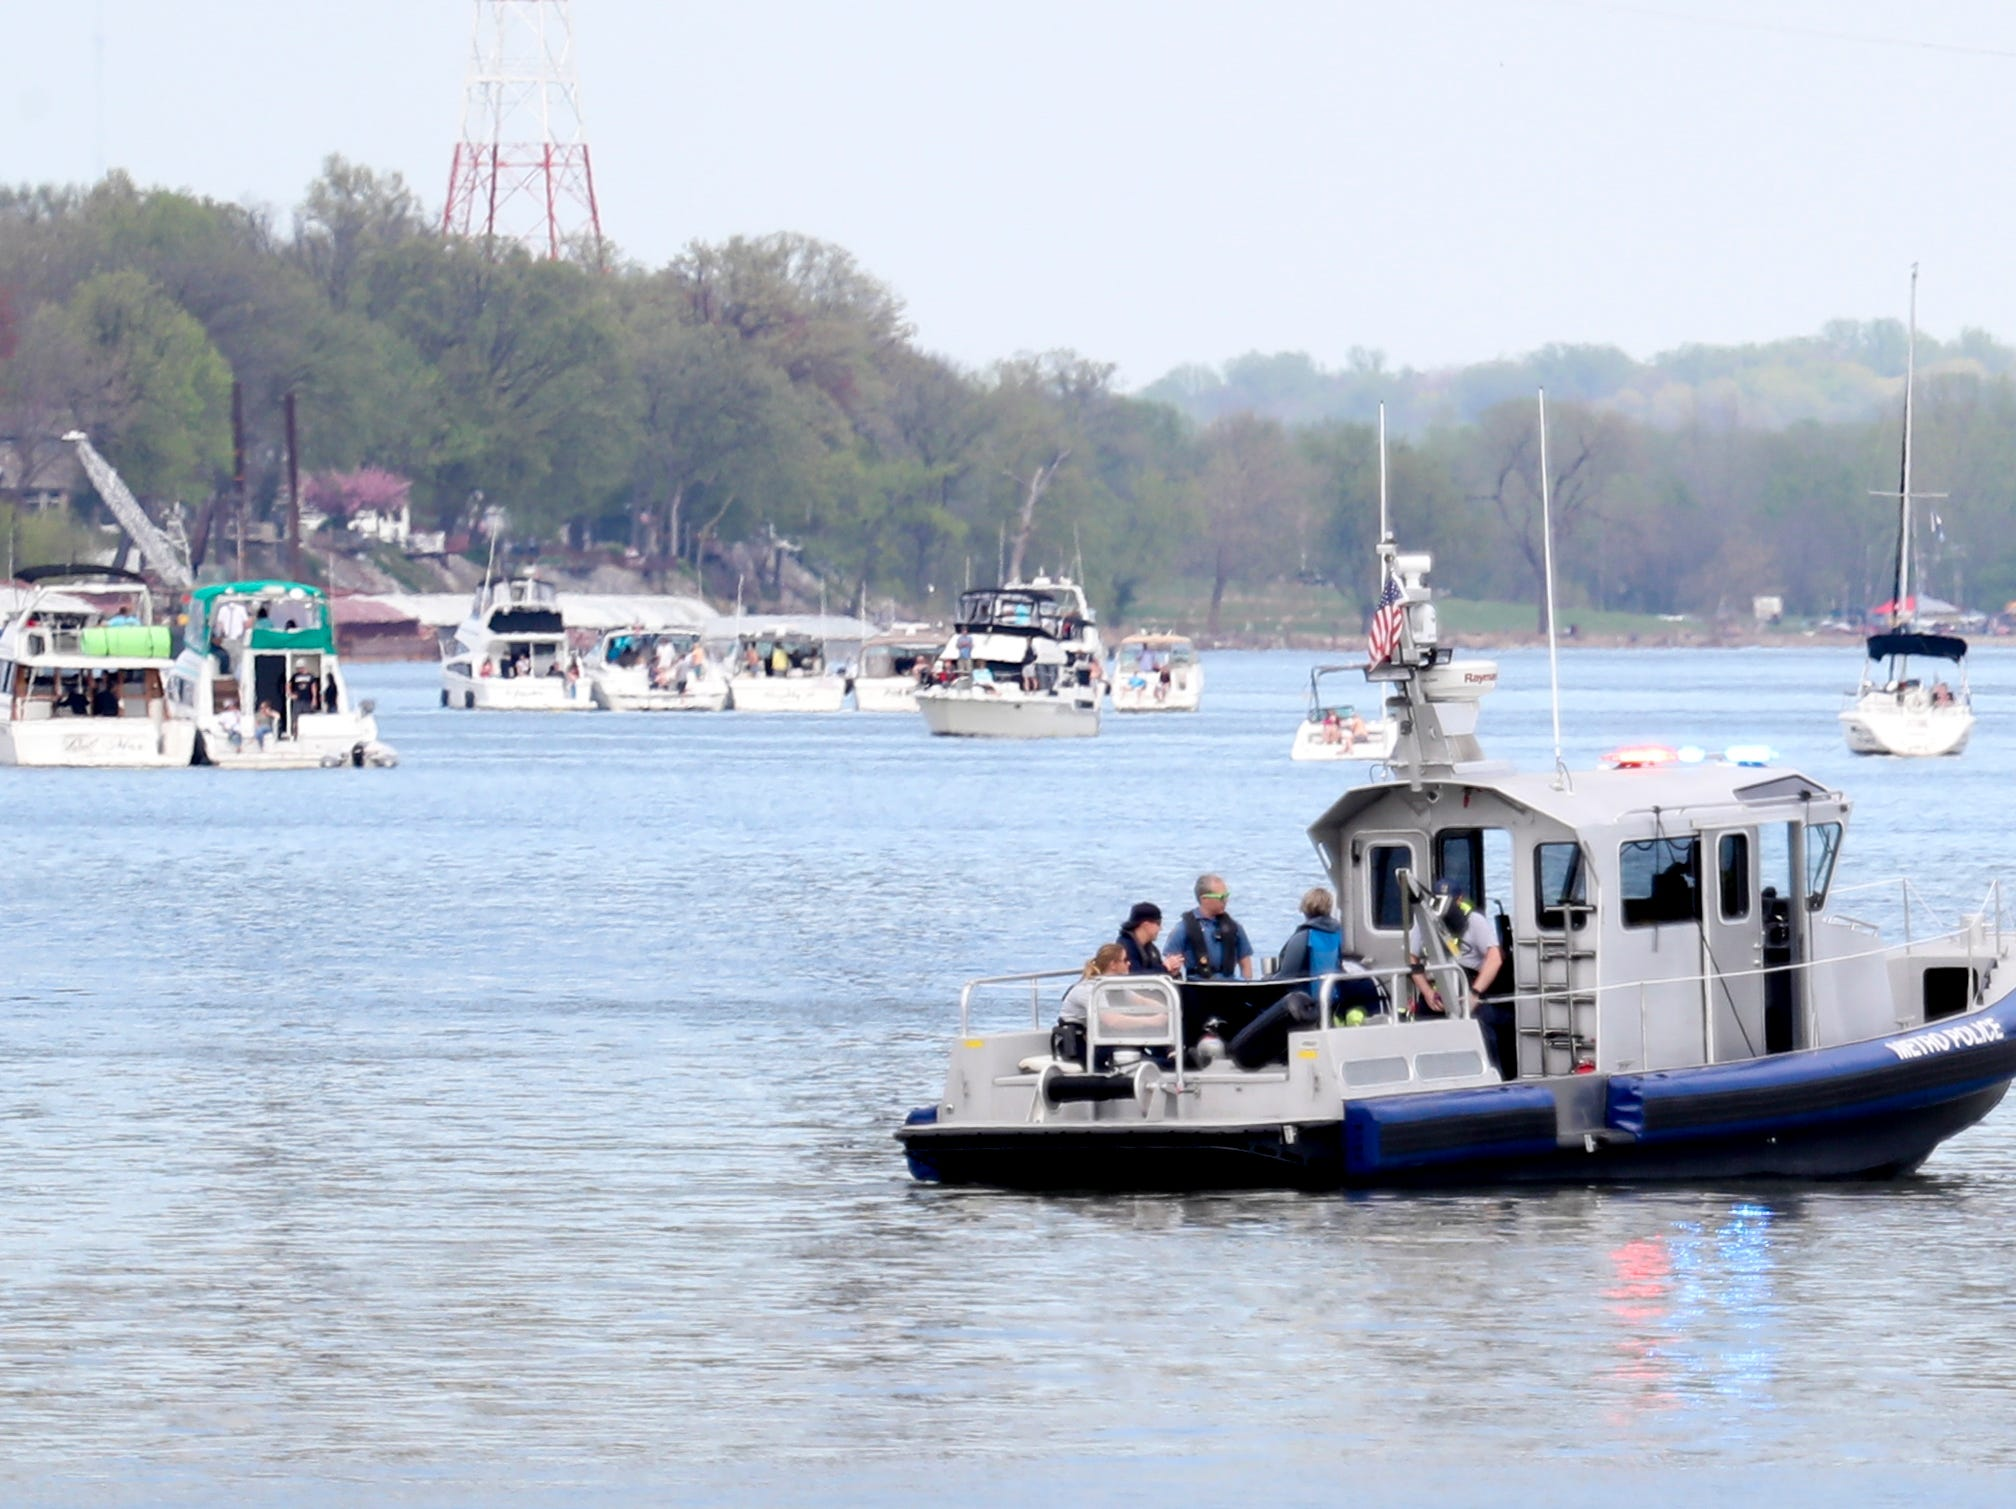 Scenes from Thunder Over Louisville on April 13.